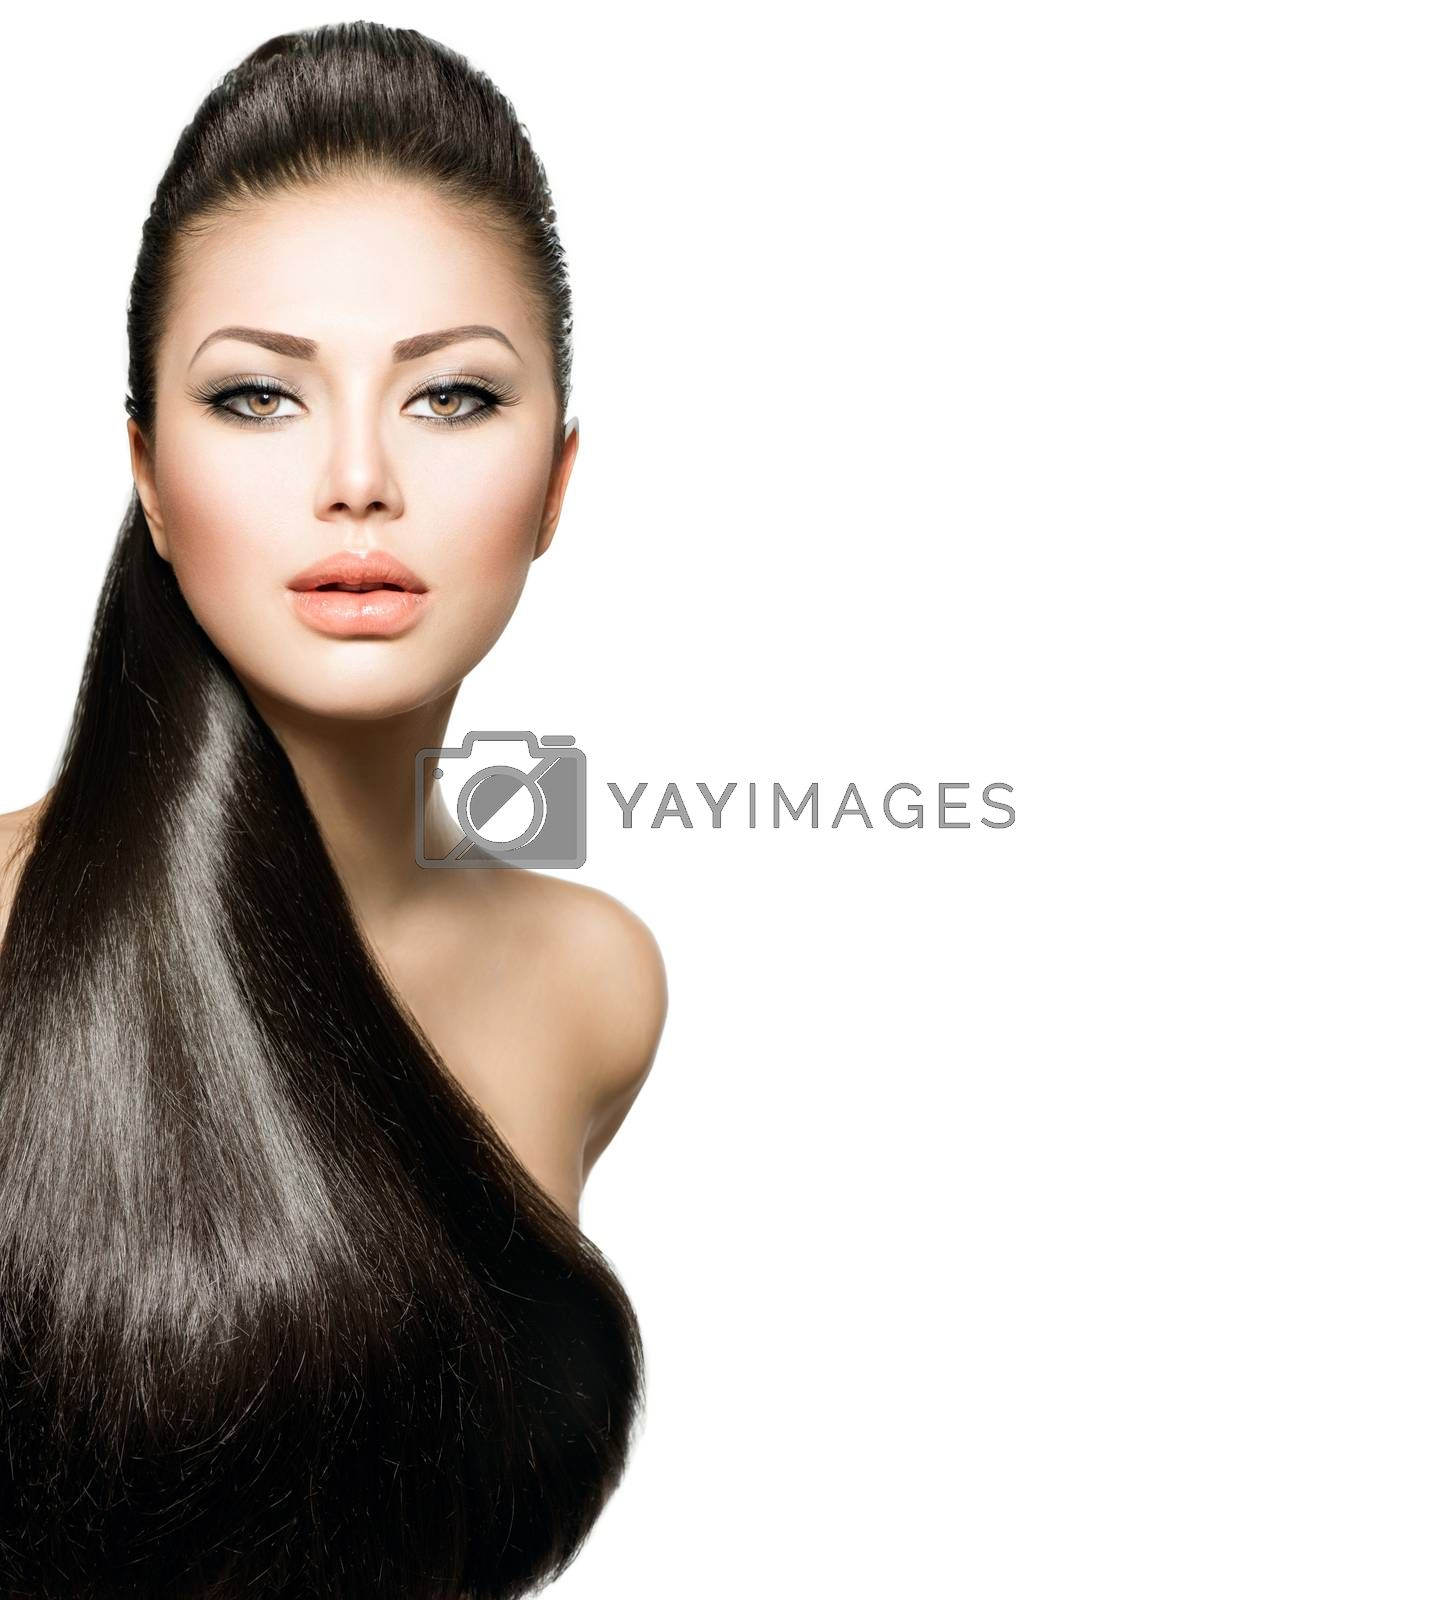 Fashion Model Girl with Long Healthy Straight Hair by SubbotinaA